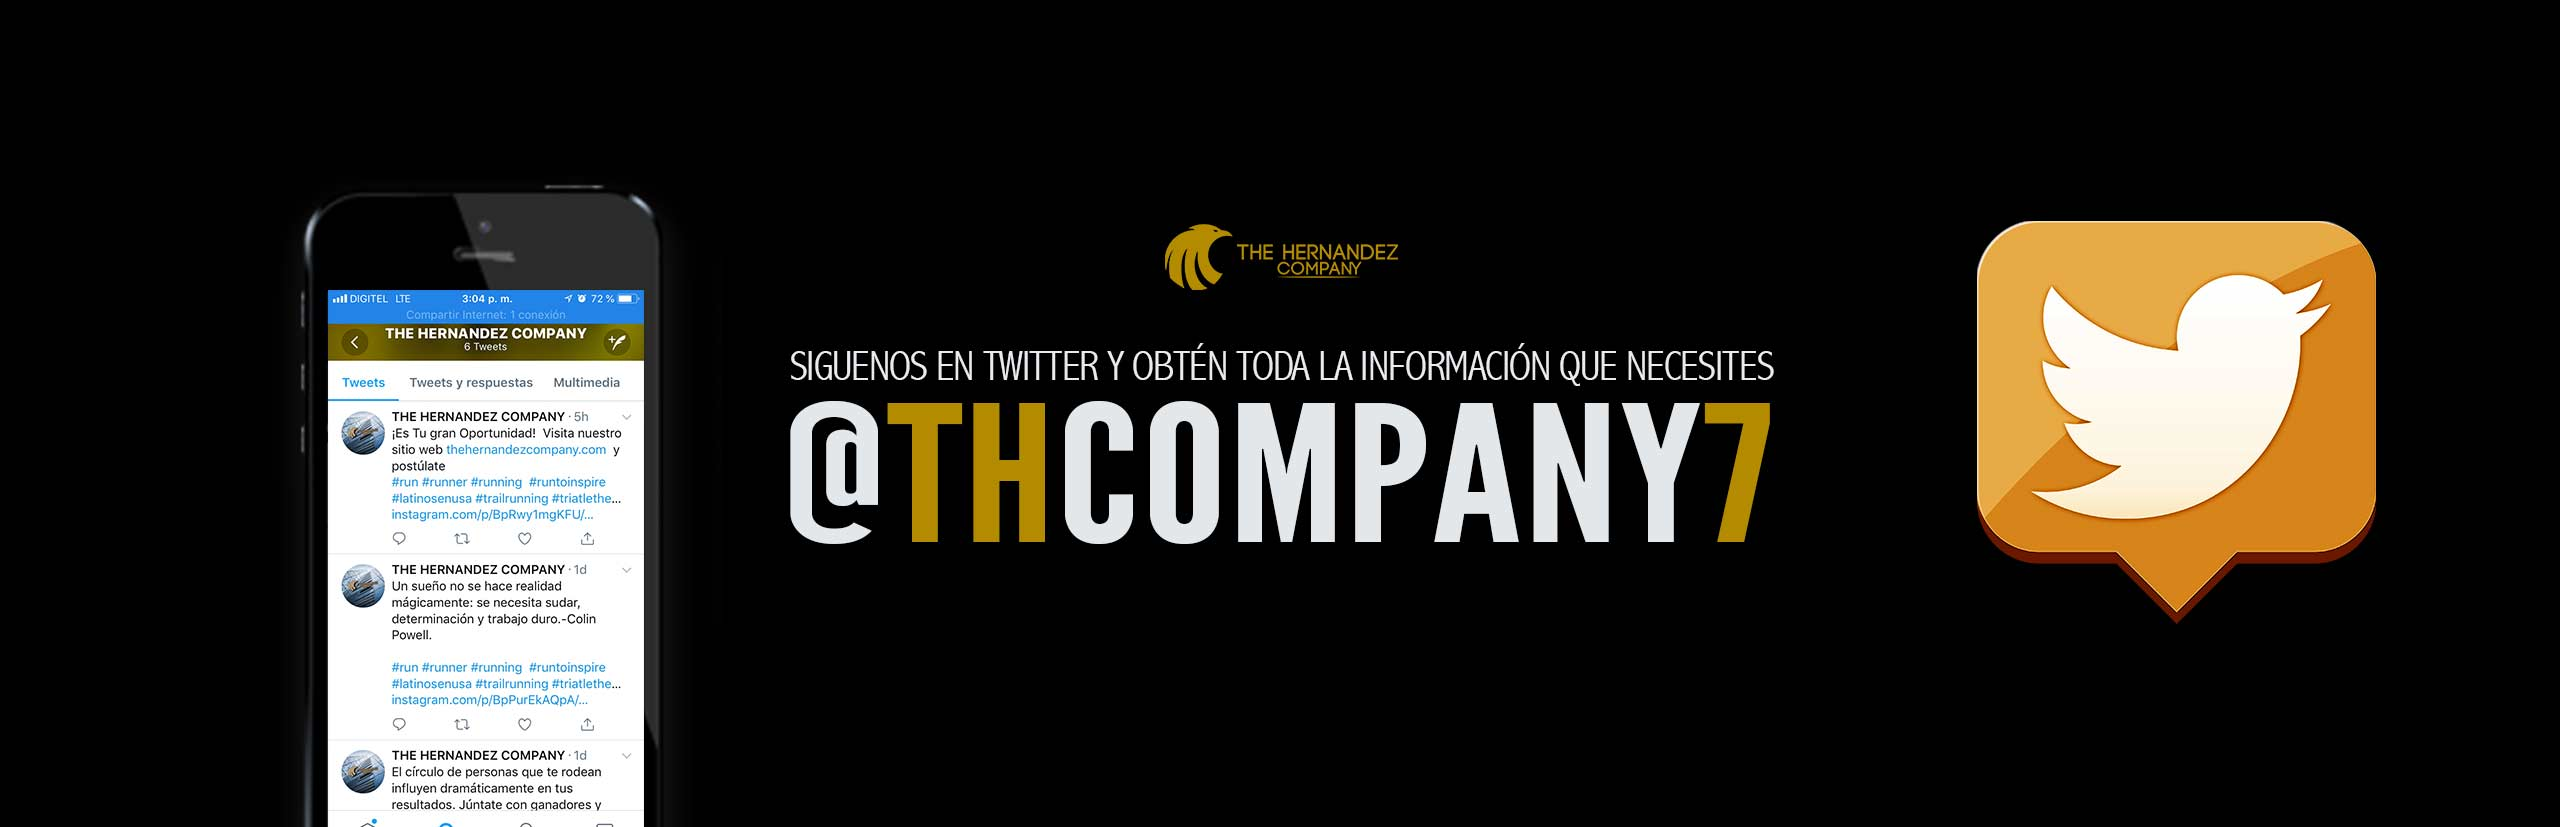 Twitter The Hernández Company